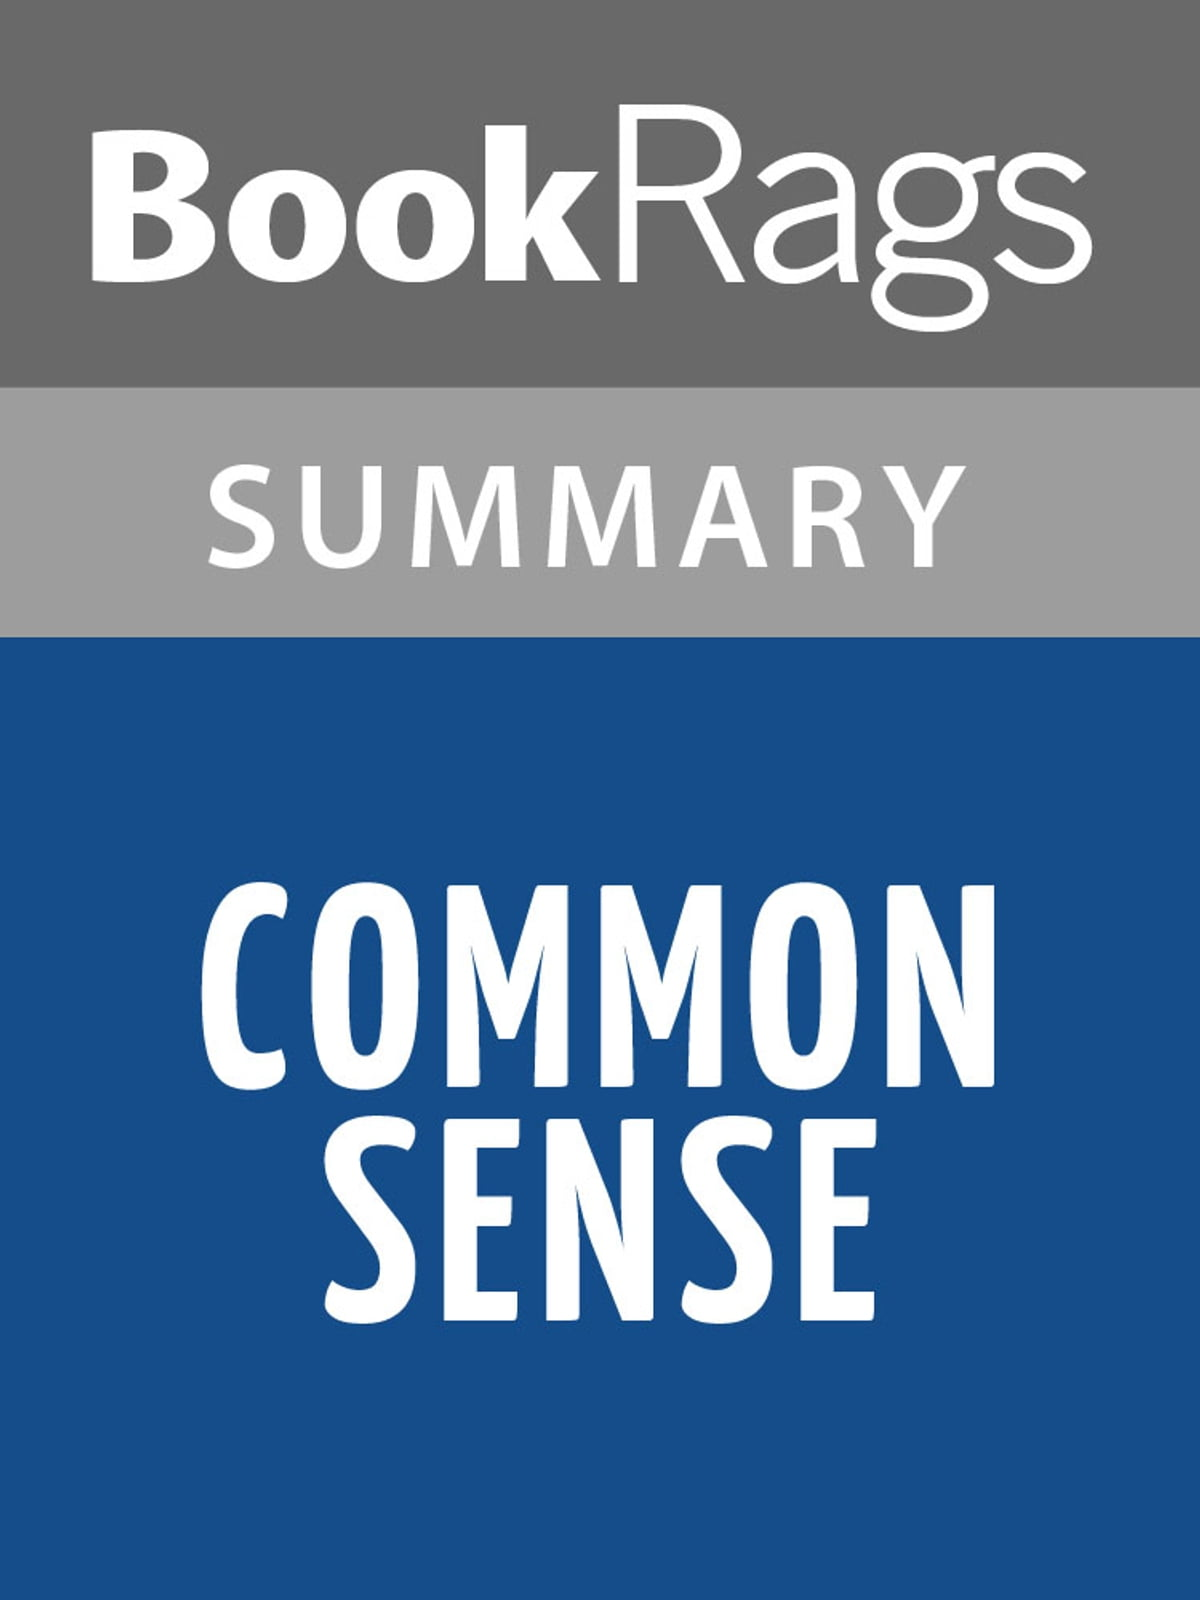 Common Sense by Thomas Paine l Summary & Study Guide eBook by BookRags - 1230000304346 | Rakuten ...